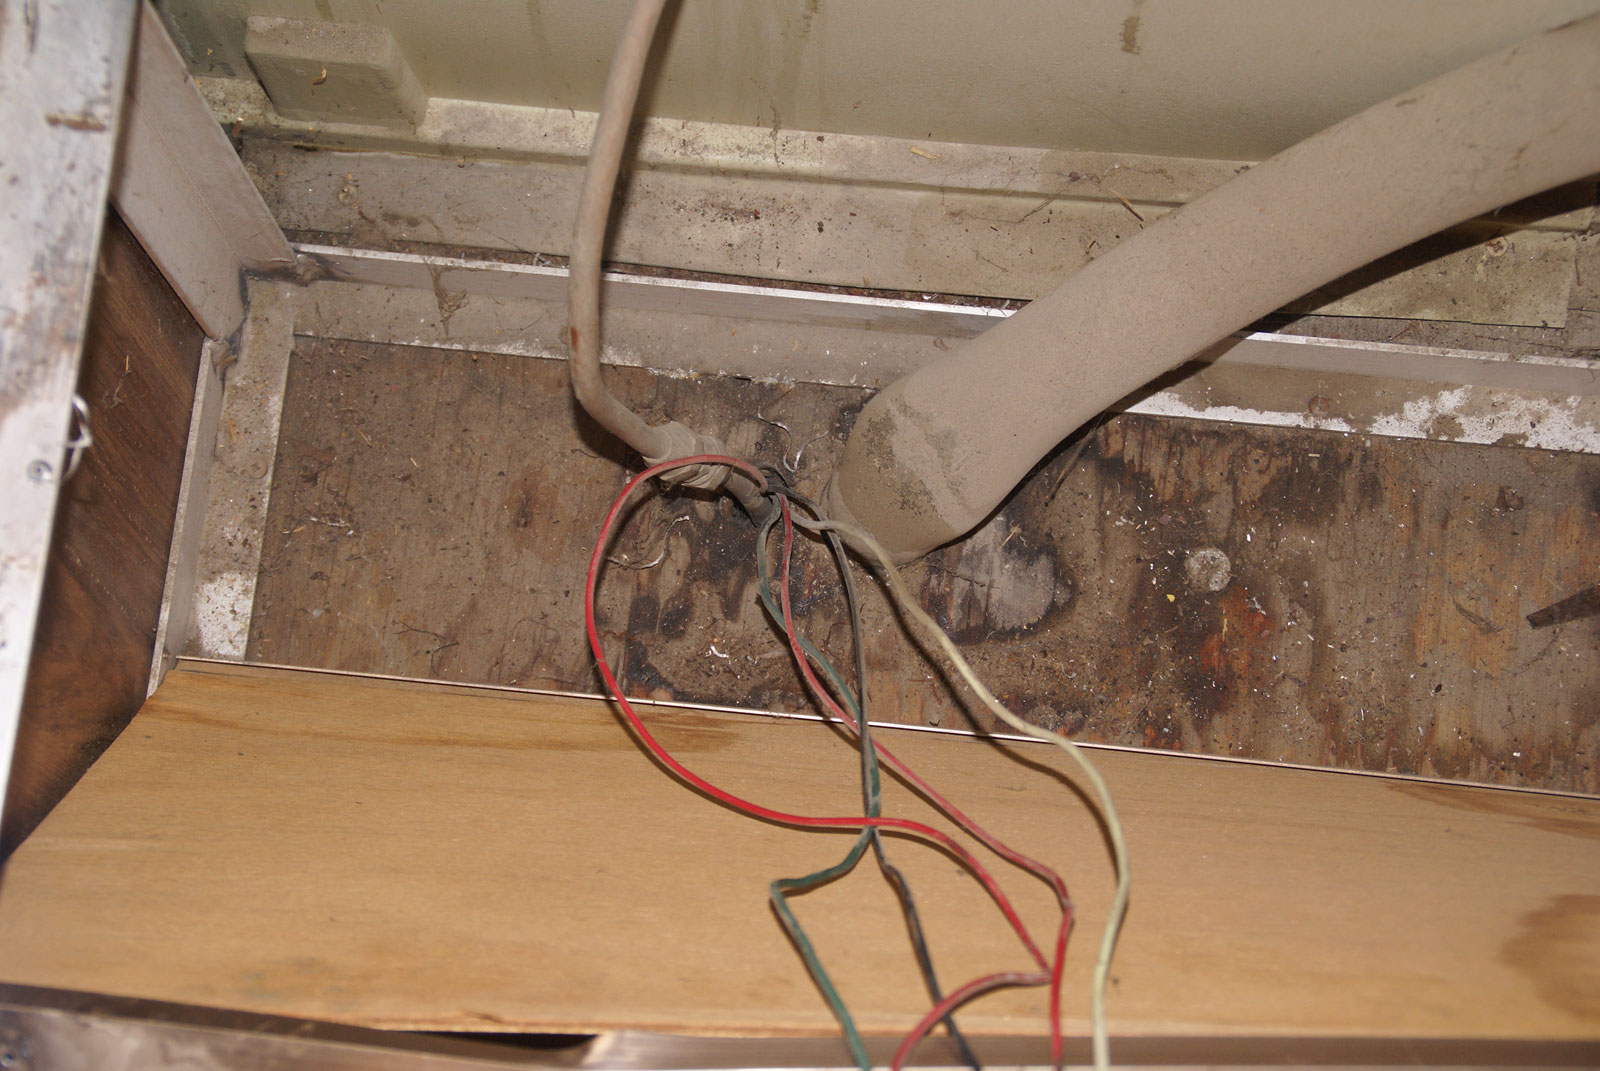 Click image for larger version  Name:Mystery-Wires-1-DSC00523-sm.jpg Views:188 Size:305.0 KB ID:65806